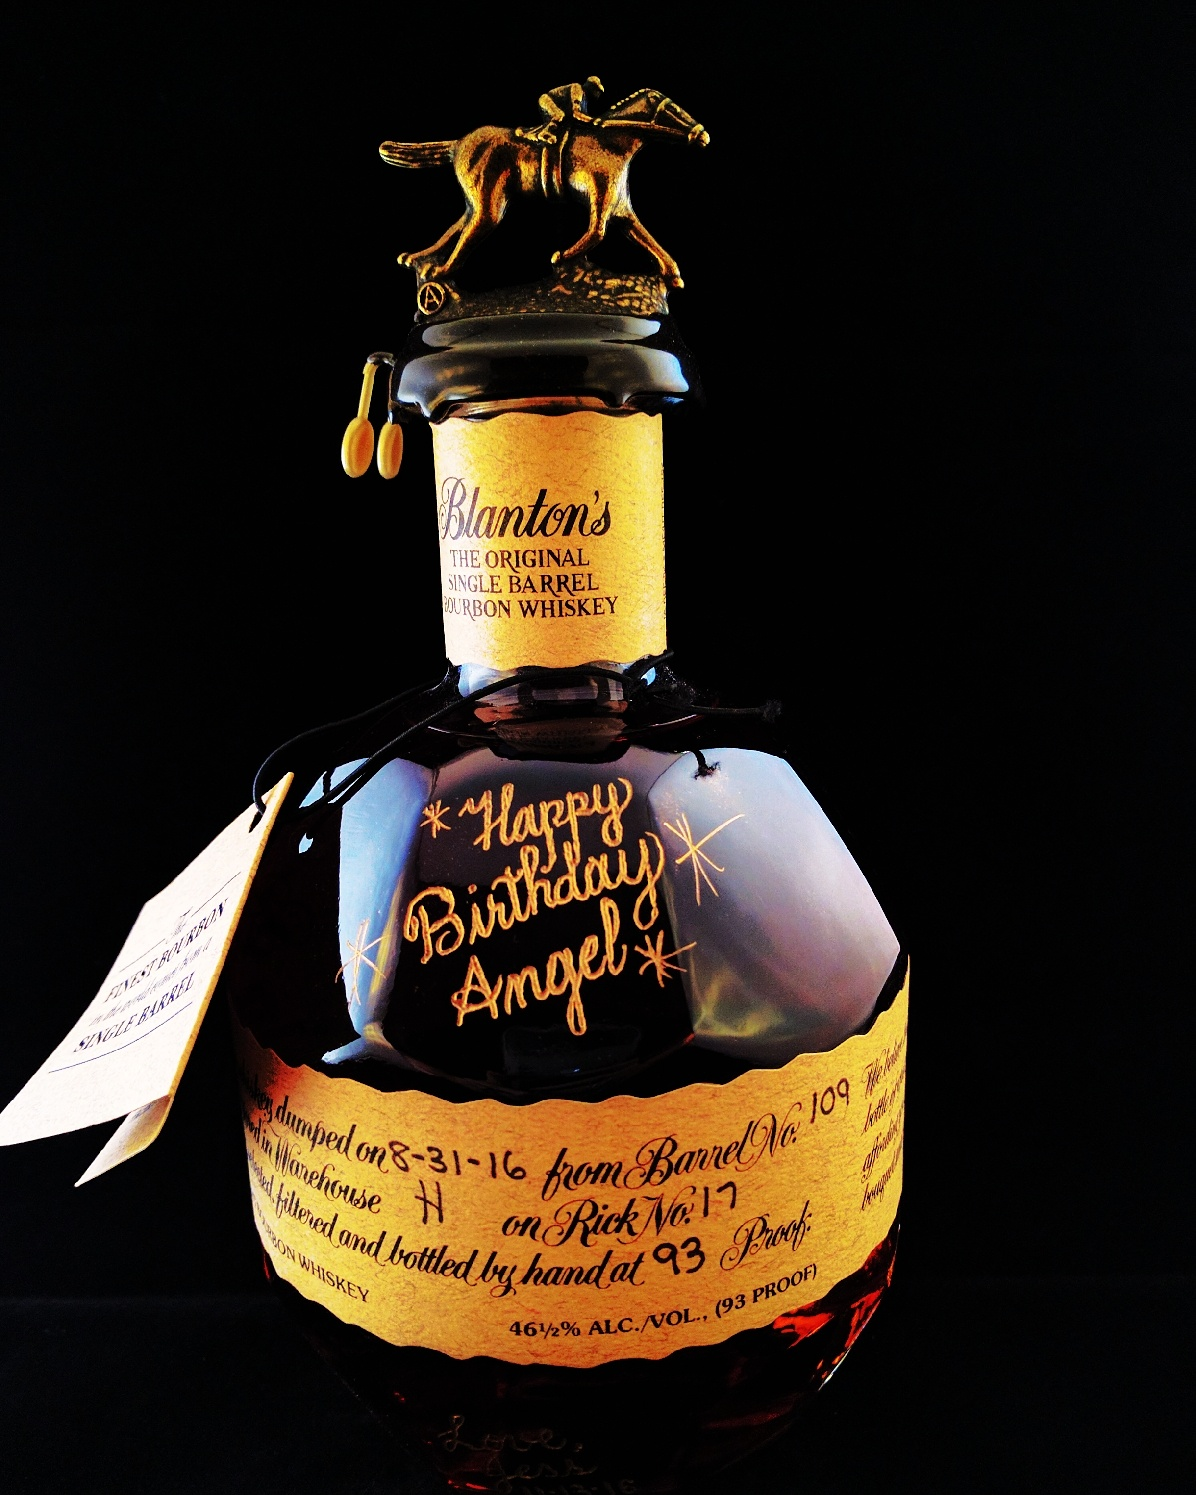 Bourbon Bottle Engraving Makes a Special Birthday Gift